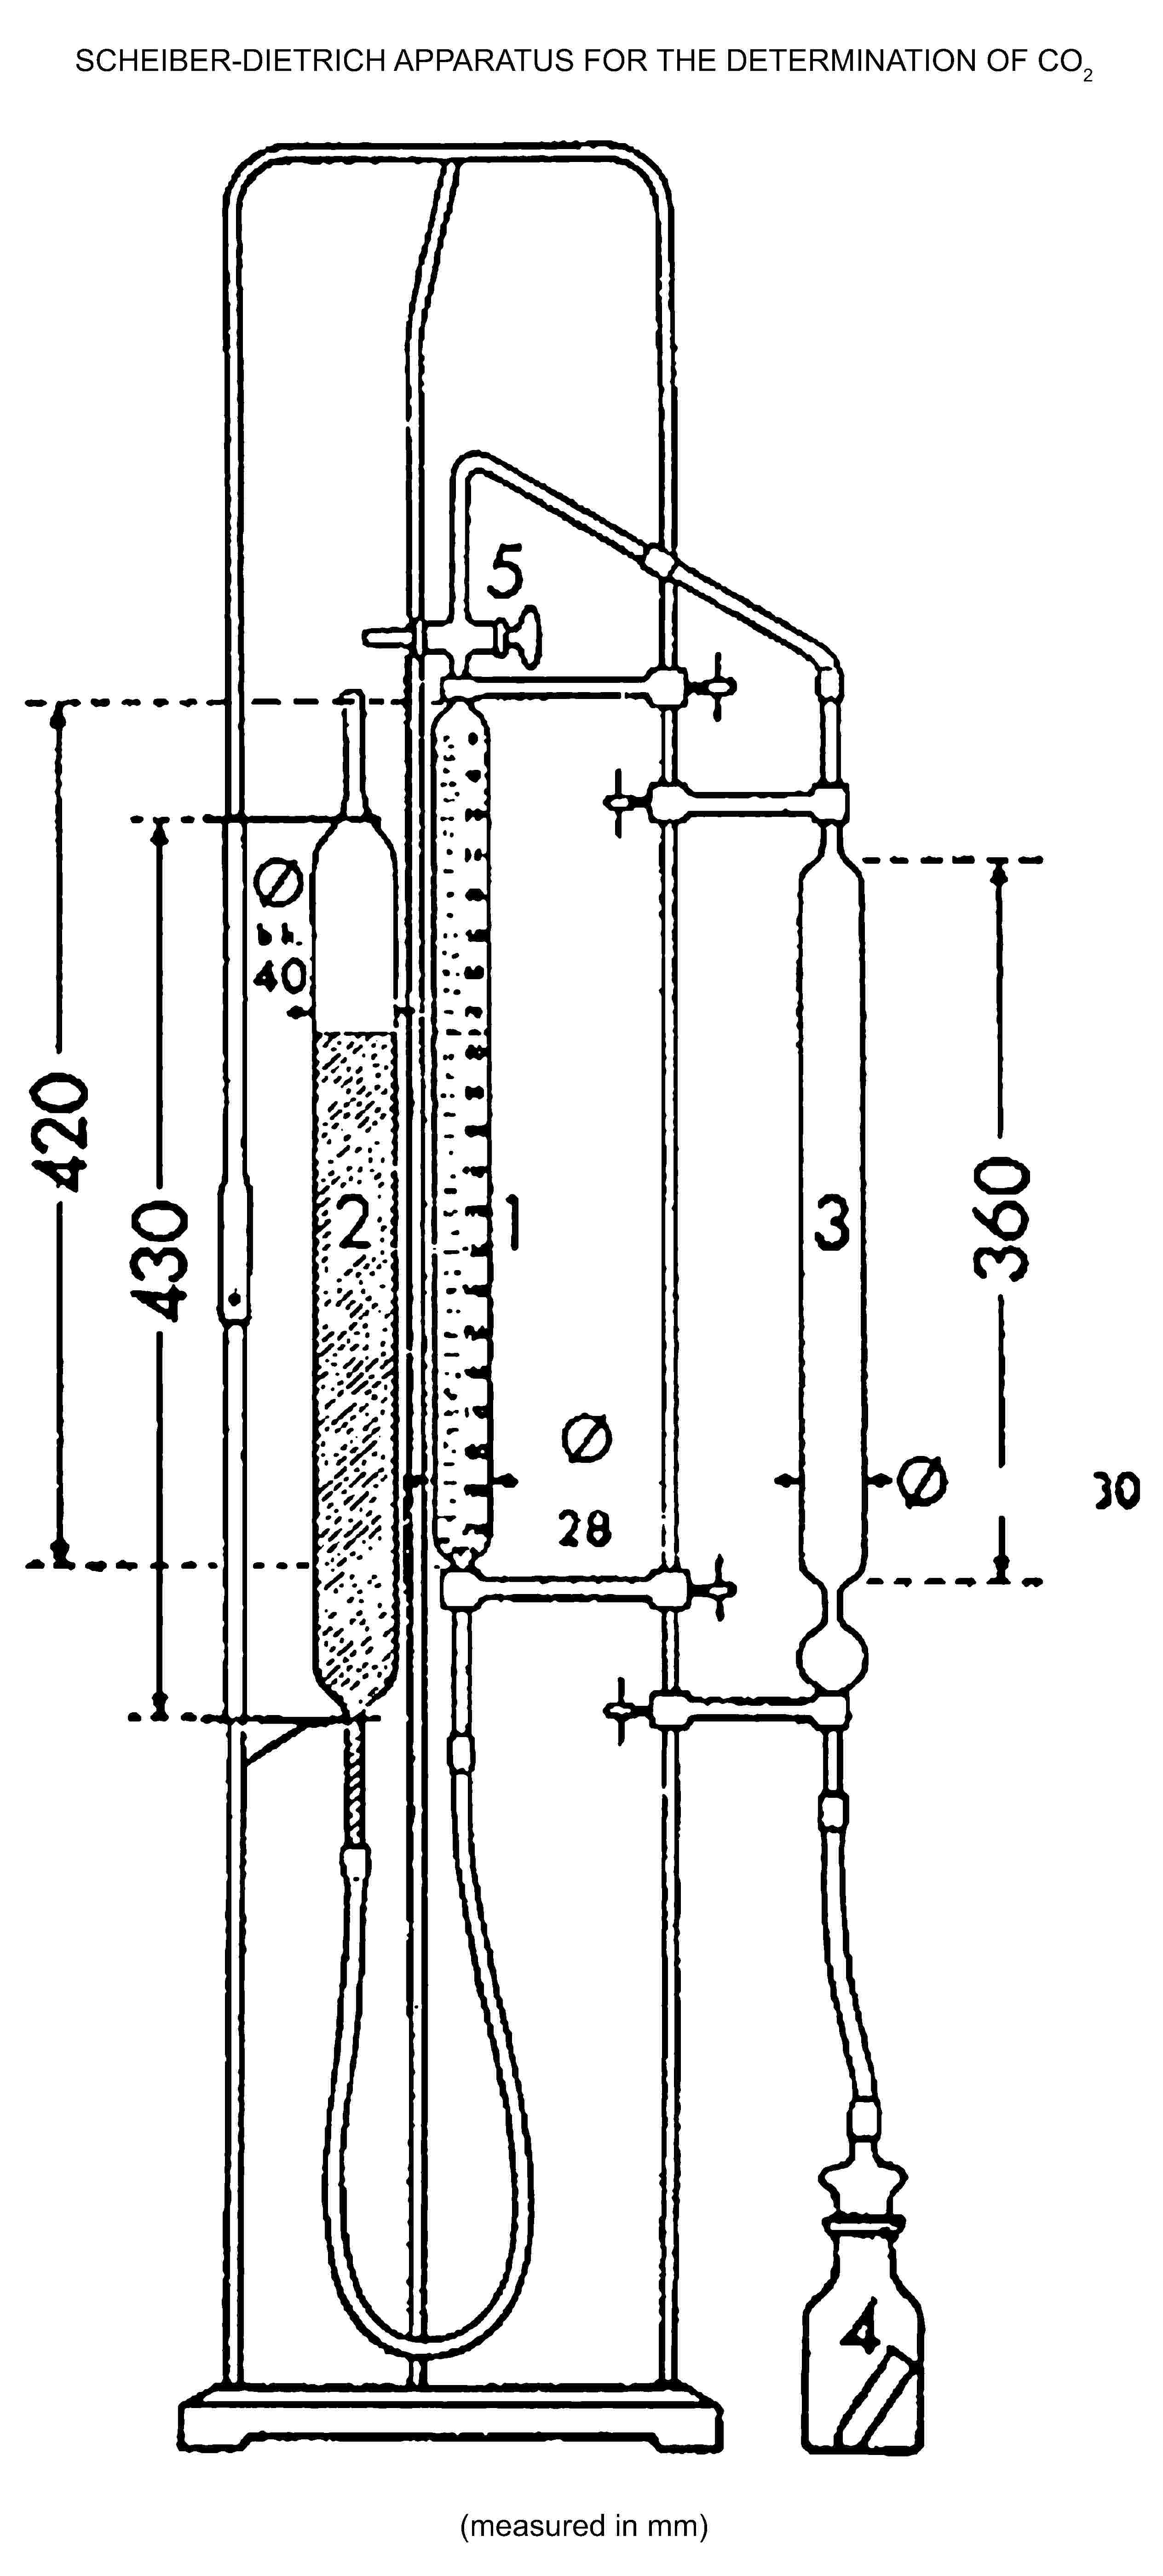 SCHEIBER-DIETRICH APPARATUS FOR THE DETERMINATION OF CO2(measured in mm)